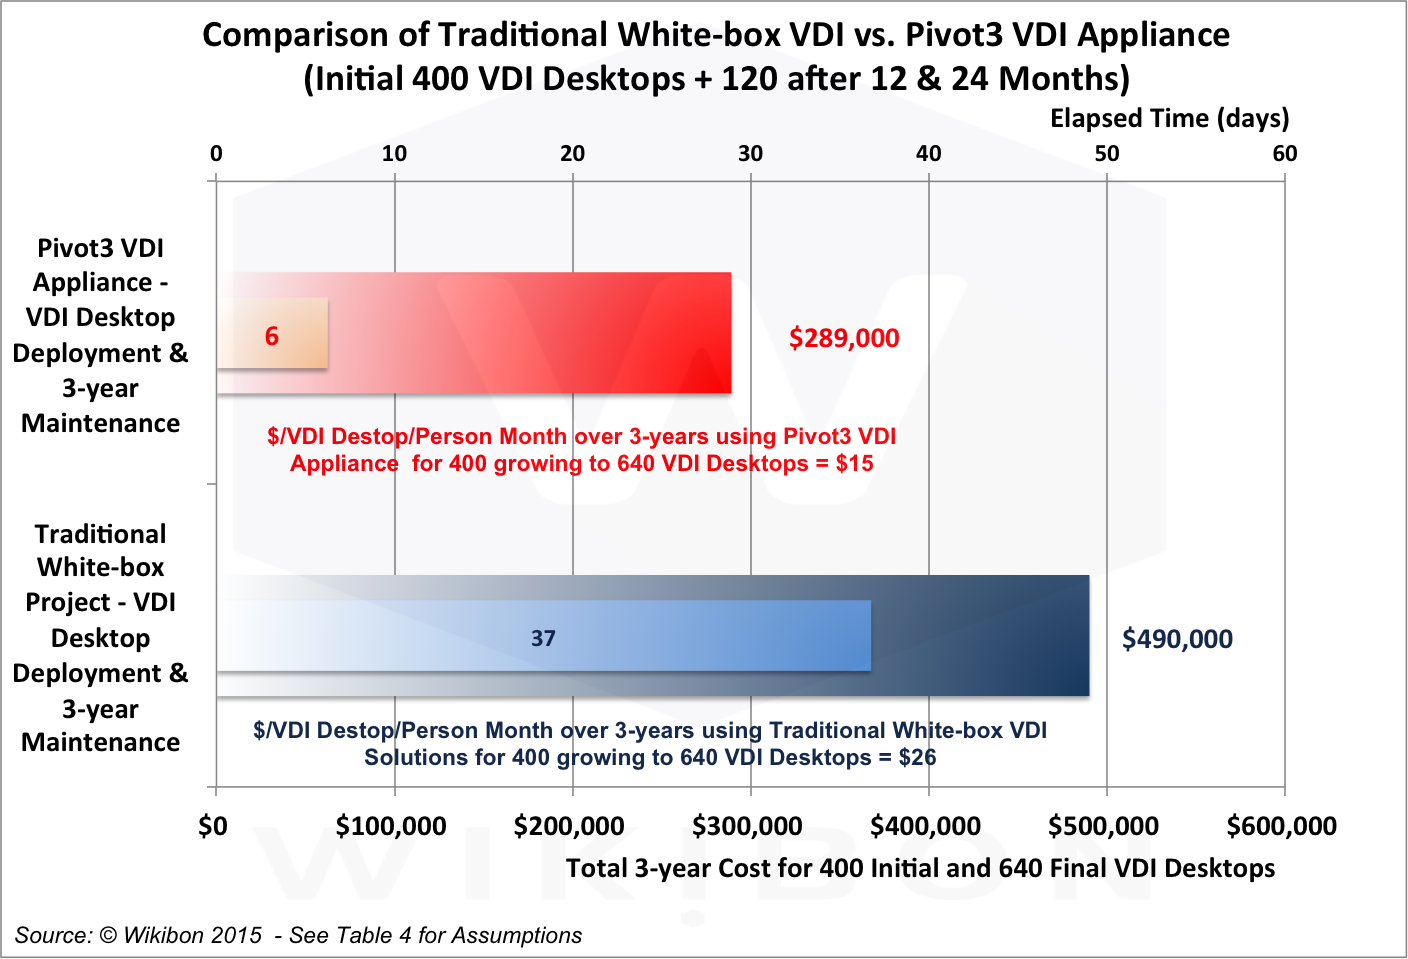 Comparison of Traditional White Box VDI with Pivot3 VDI Appliance (640 VDI Desktops). Source: © Wikibon 2015, based on the assumptions and calculations in Table 3 in the Footnotes, itself derived from Tables 5 & 6 in the Footnotes below.